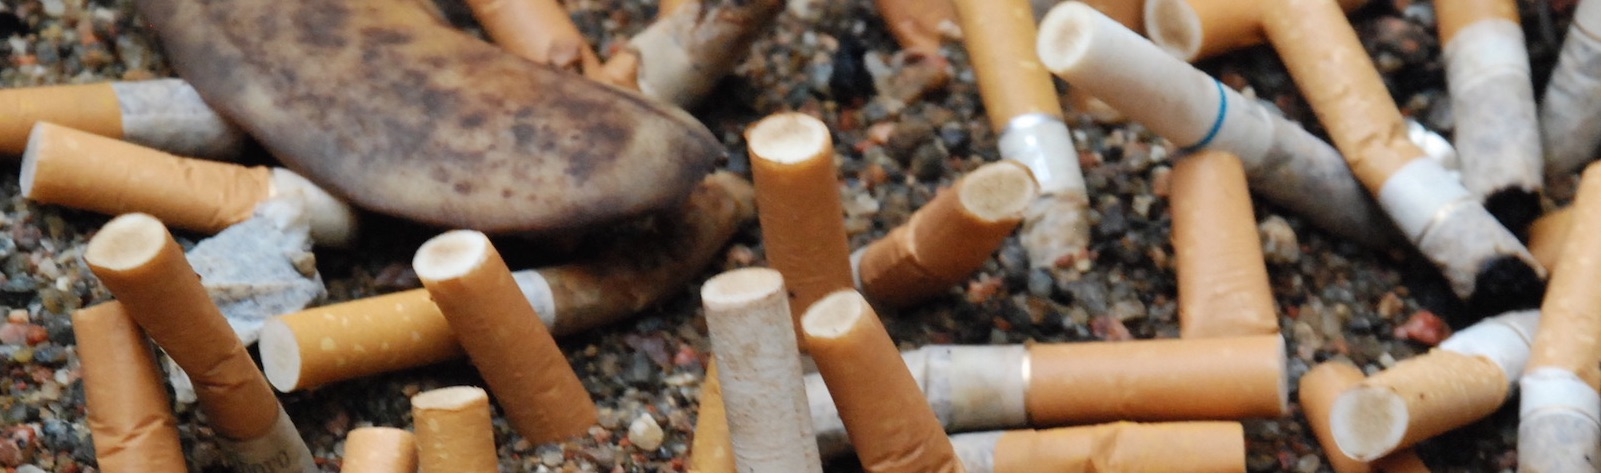 How the Use of Tobacco Affects the Environment